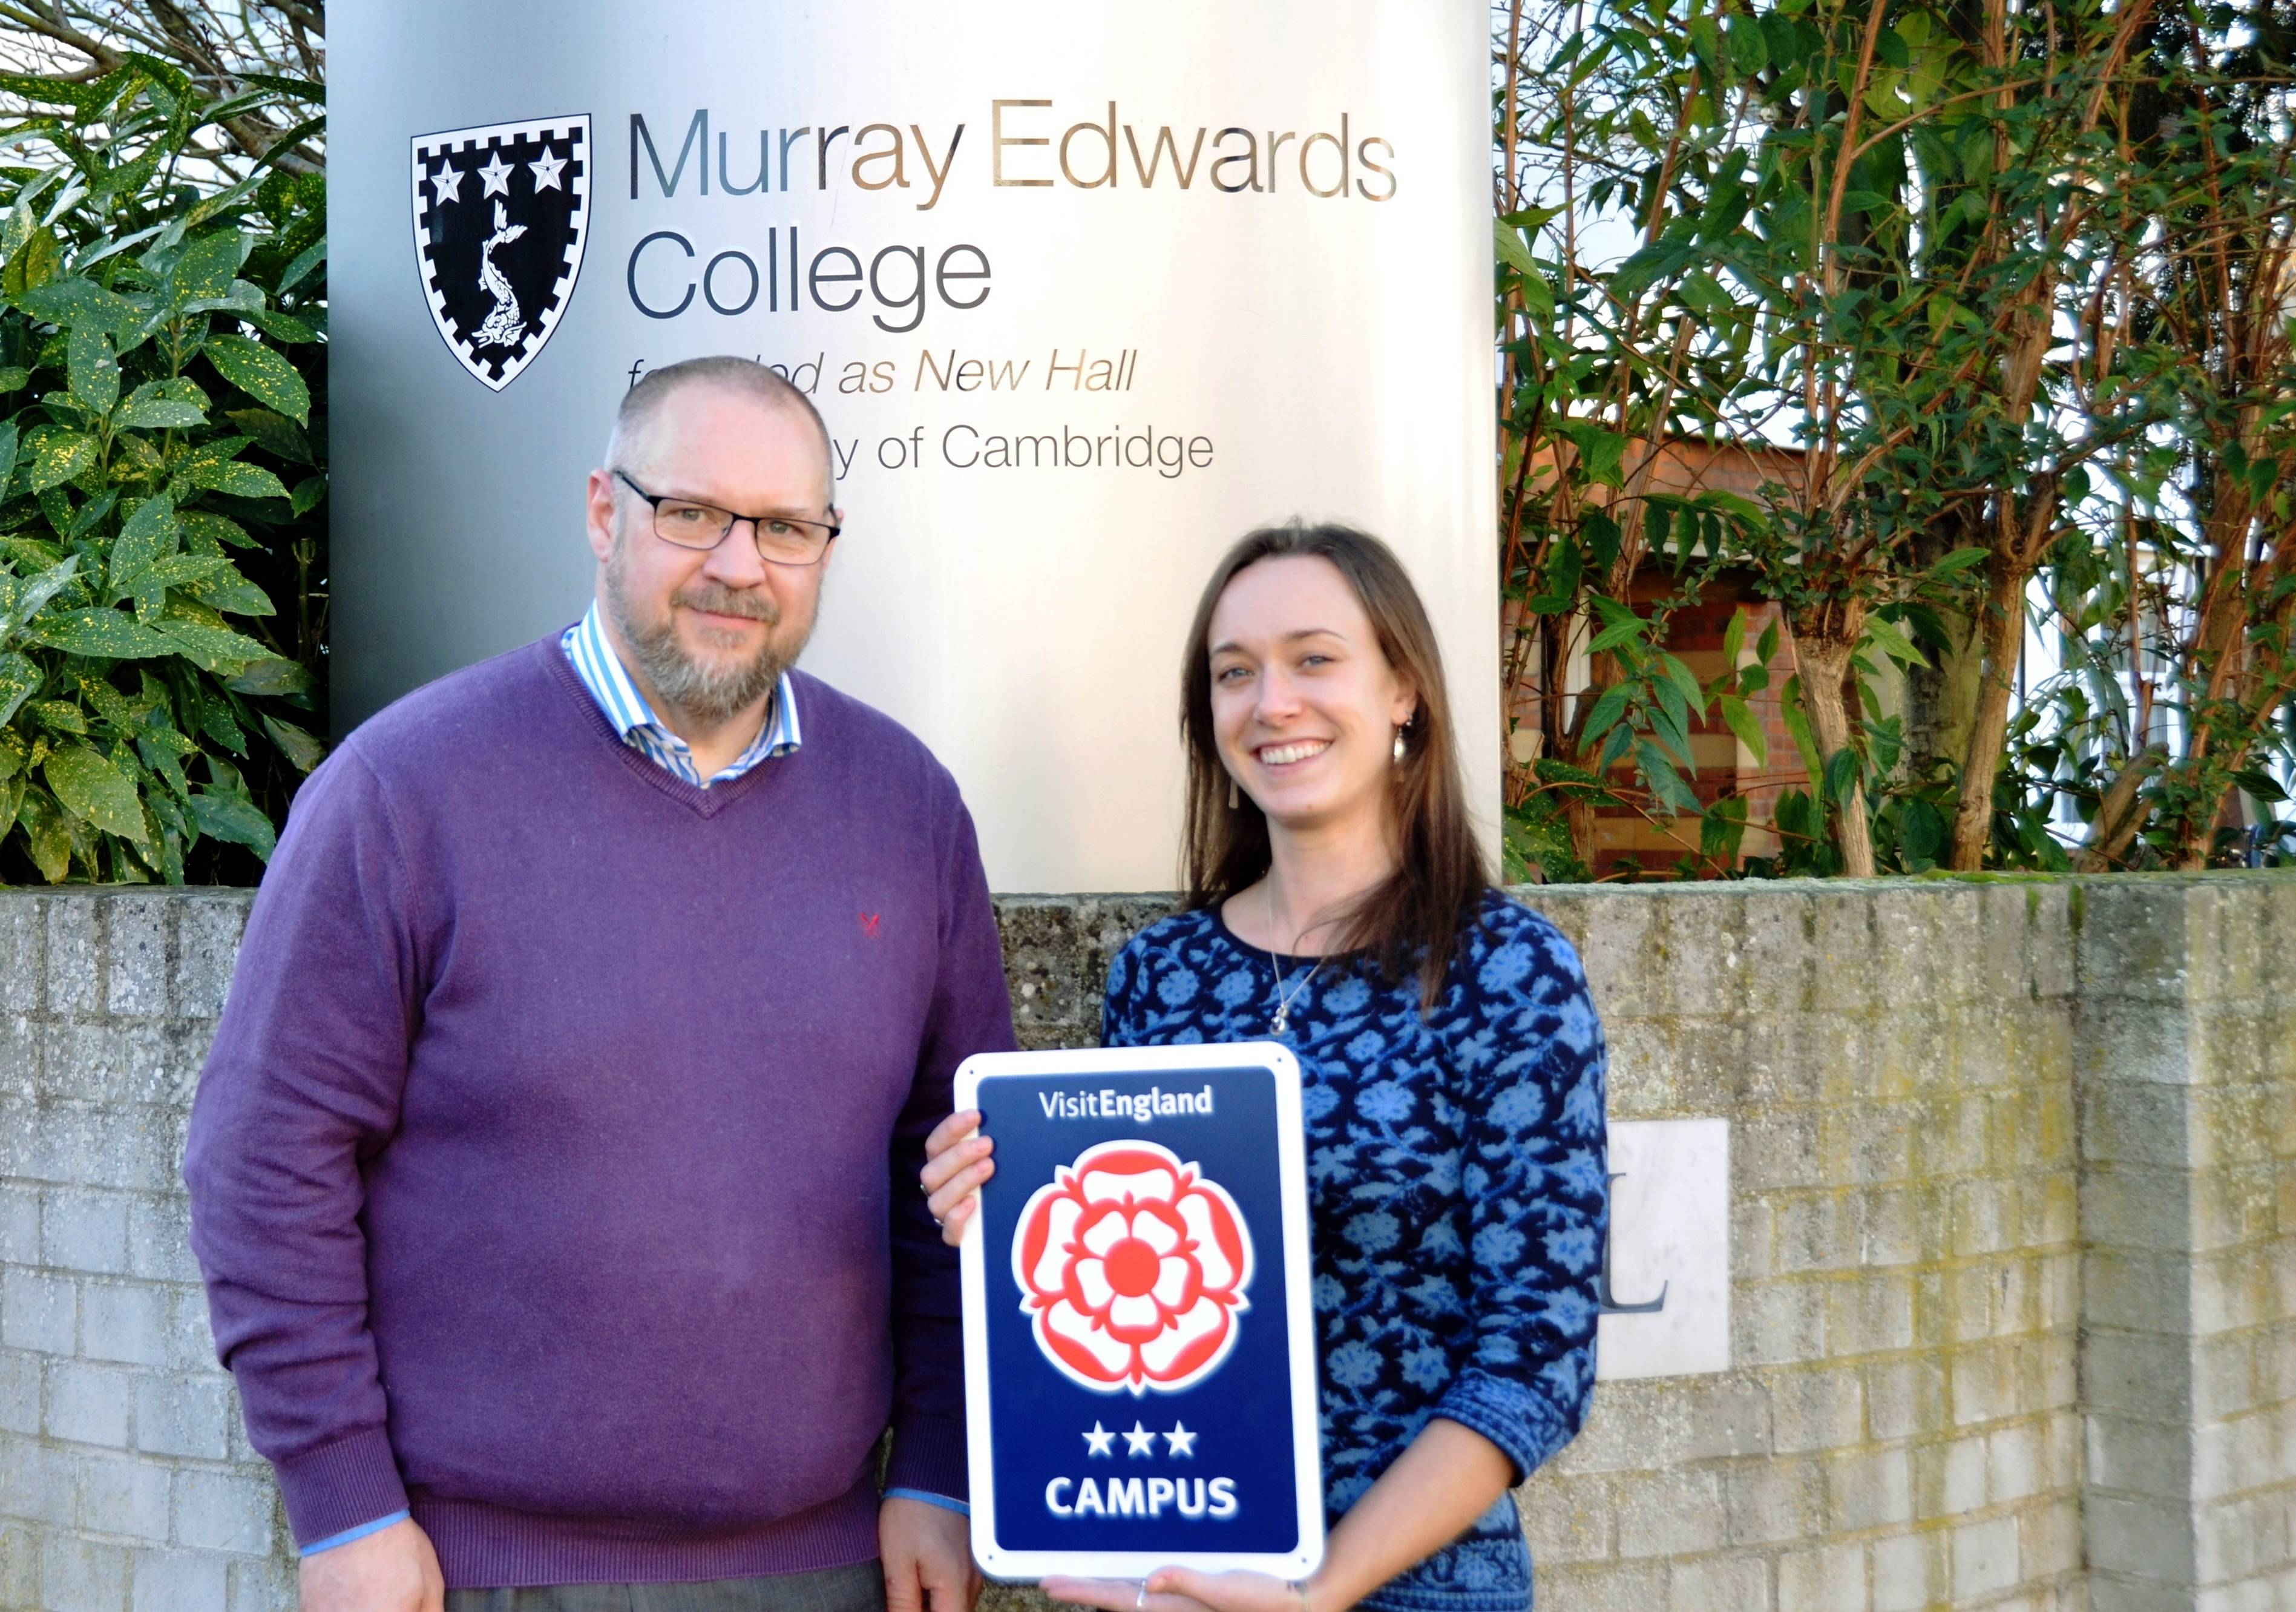 Murray Edwards College is celebrating receiving a Three Star Campus Rating for the third time, following an in-depth audit of the standard of en suite accommodation it provides for conference delegates and B&B guests.